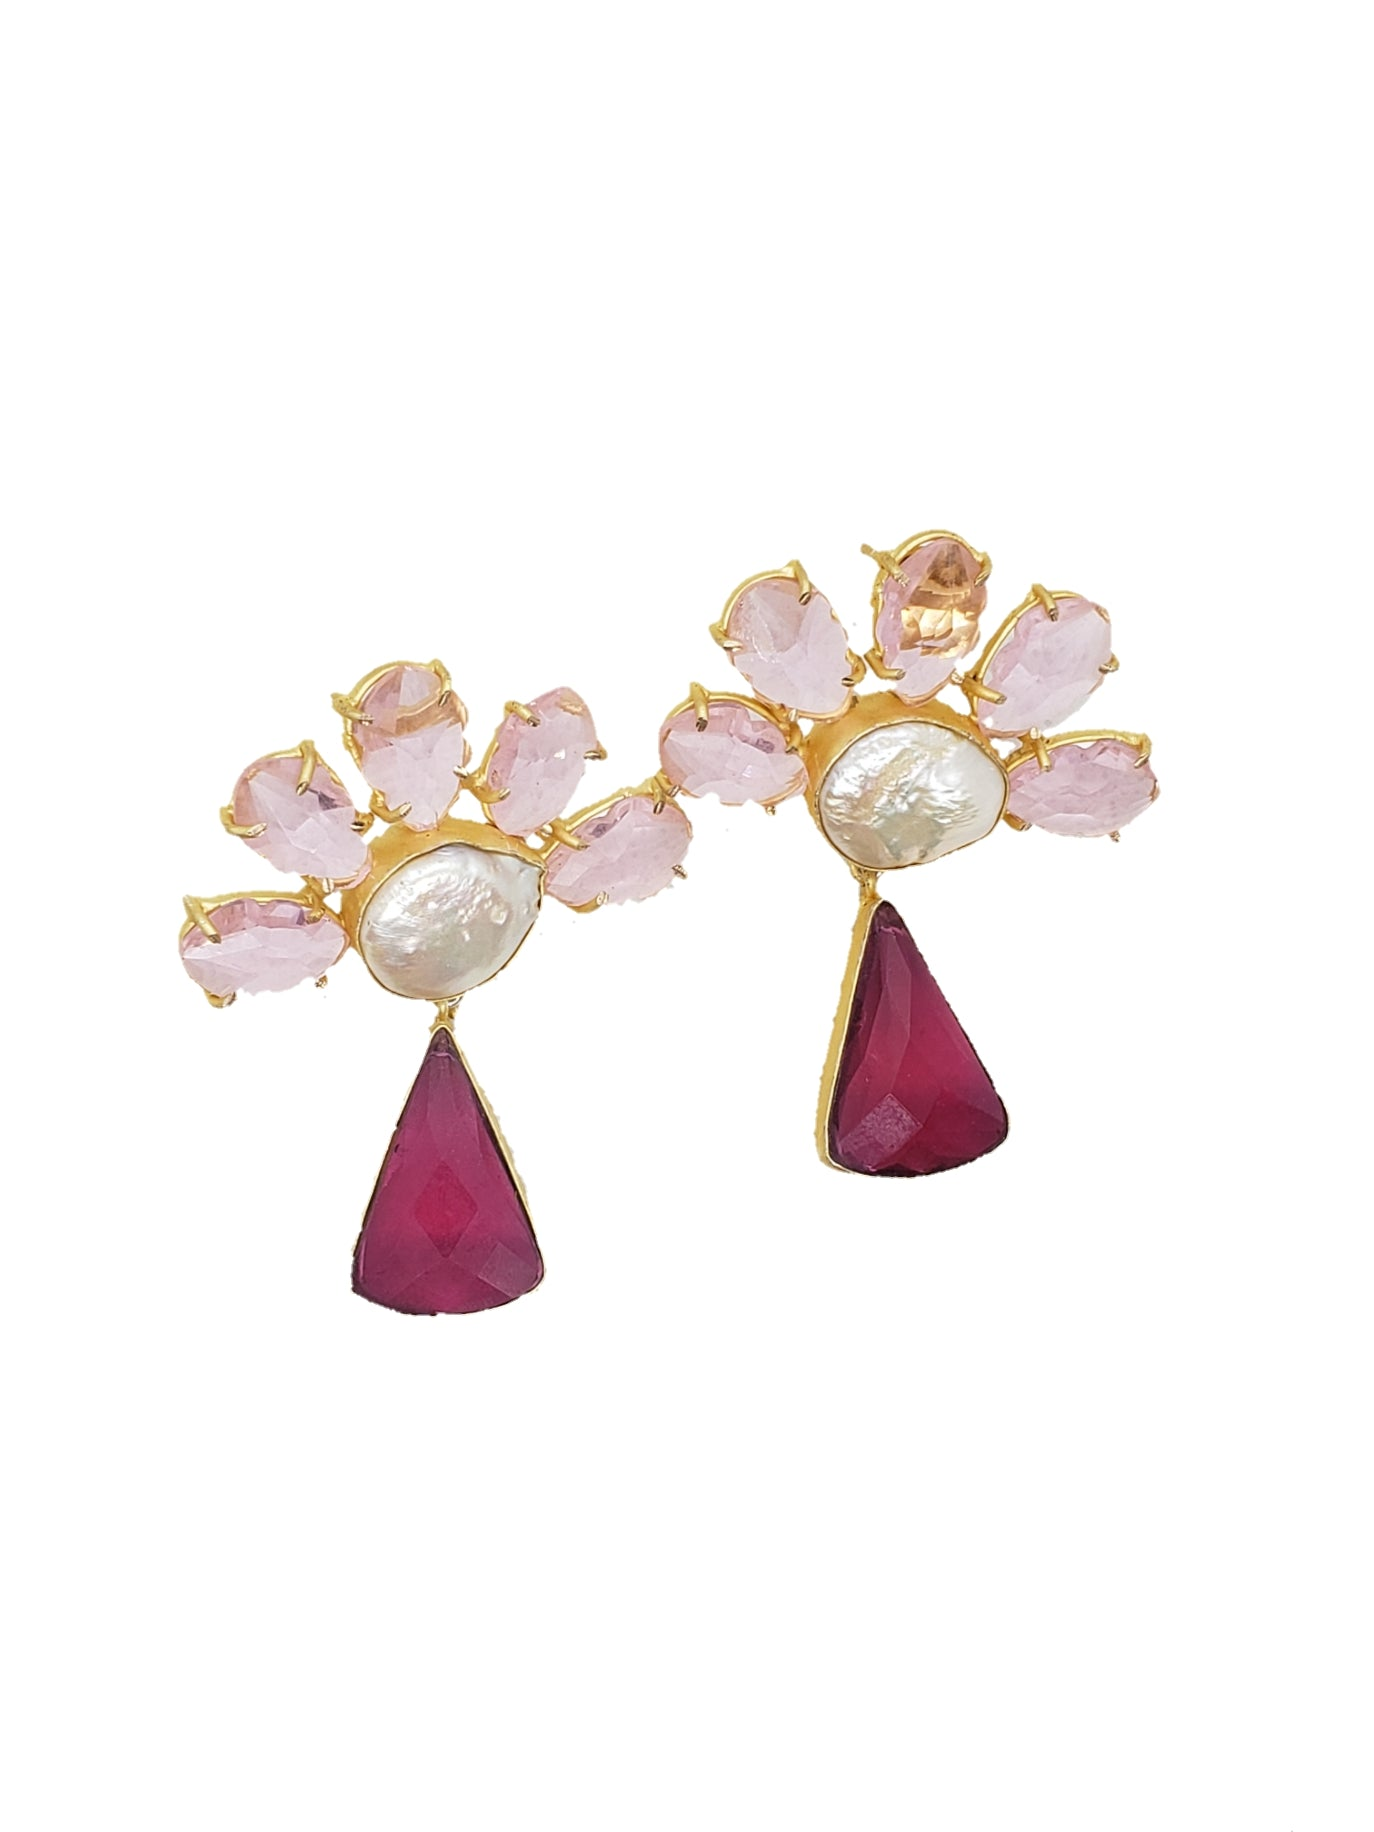 Pink Crystal Stone and Mother of Pearl Earrings - The Bauble Shop